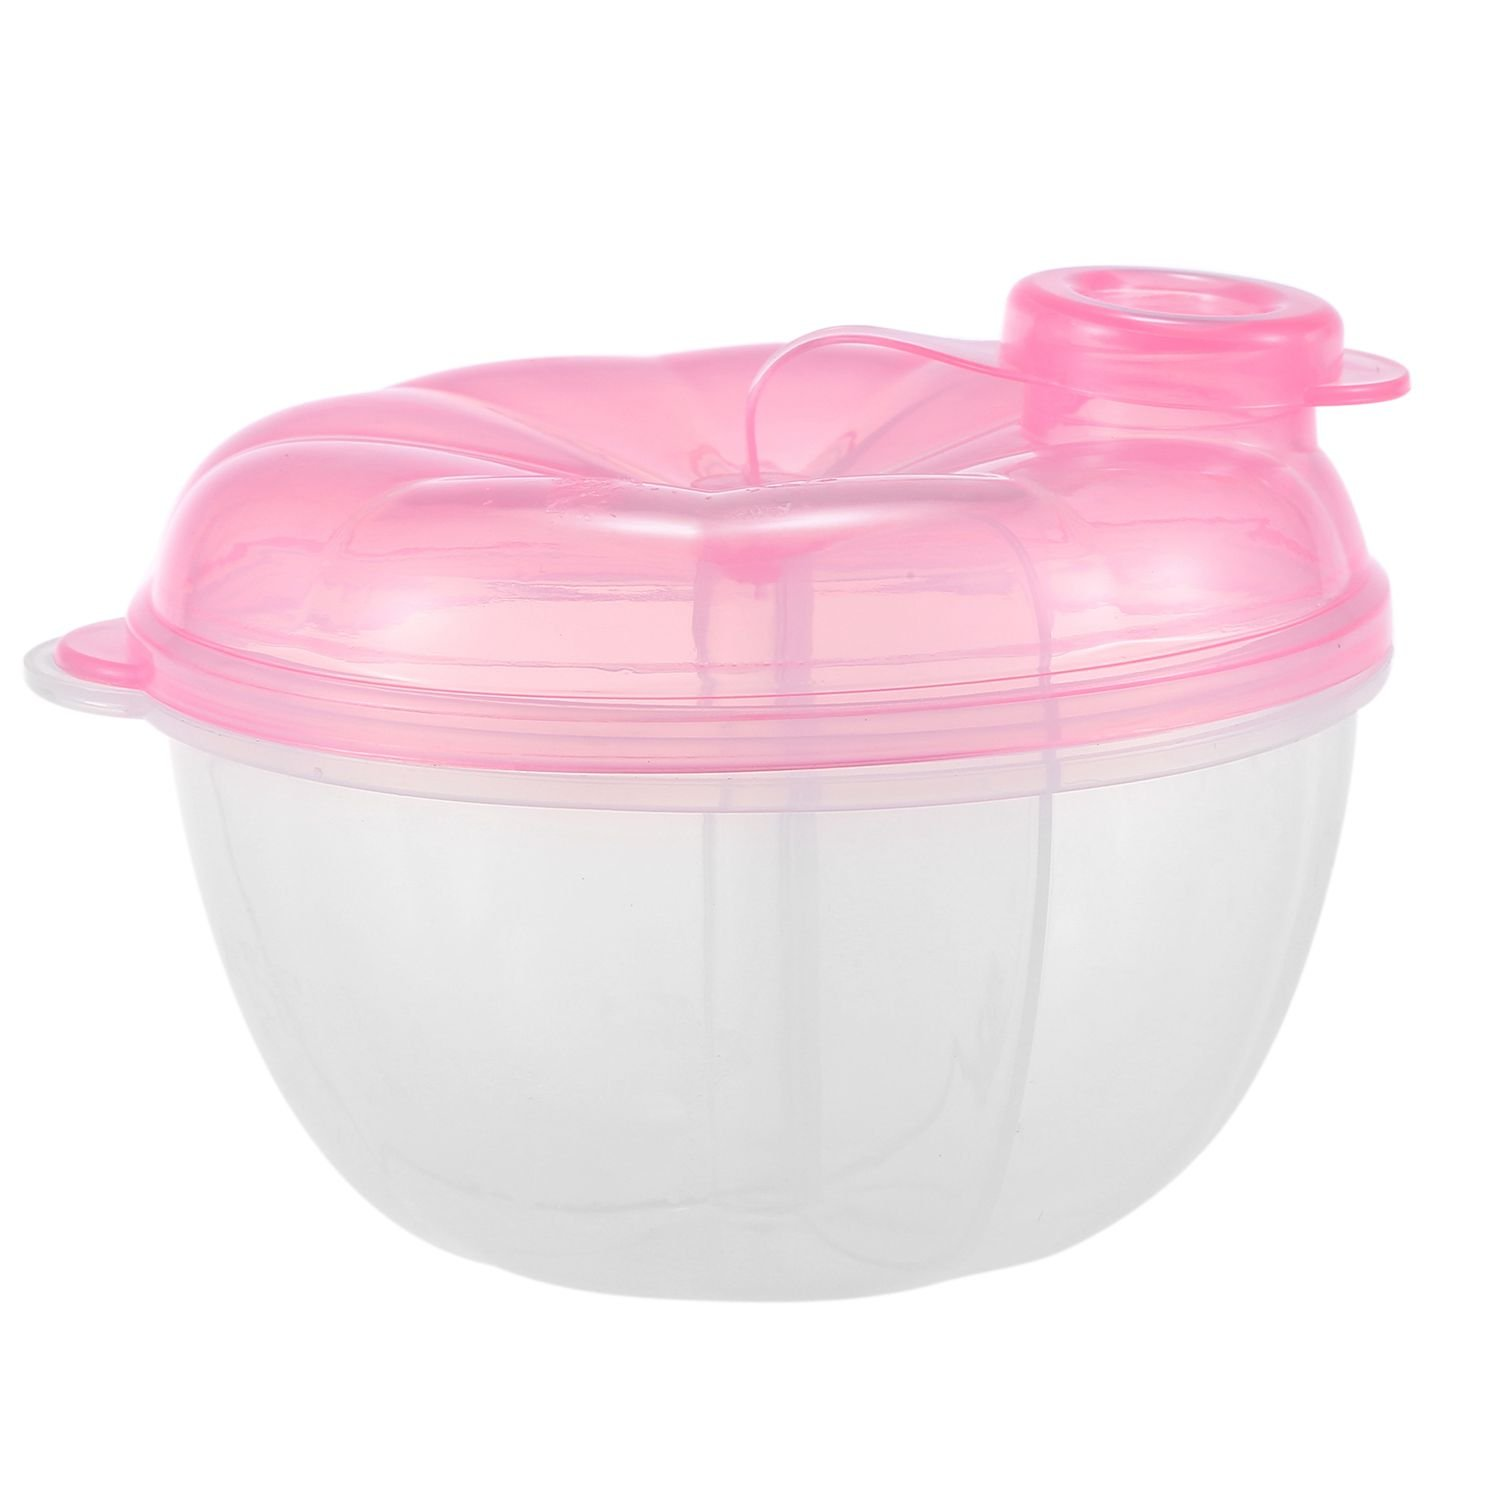 SODIAL Formula Dispenser, Non-Spill Baby Milk Powder Dispenser and Snack Cup, Baby Food Storage Container (Pink#1)